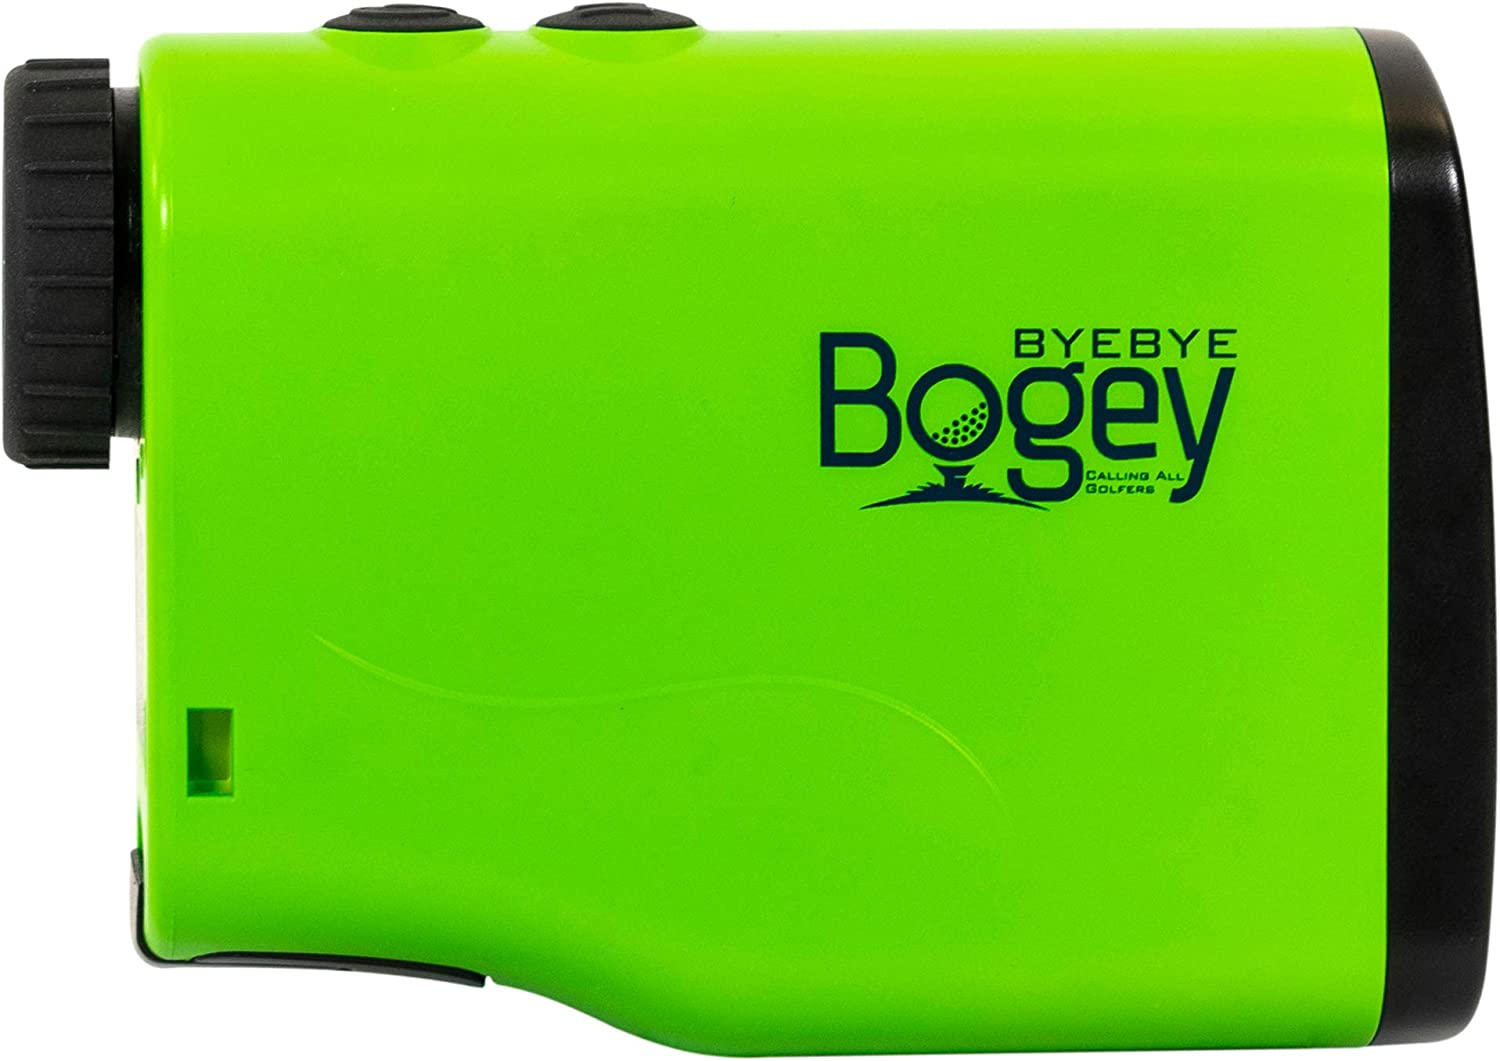 Bye Bye Bogey – Pro 600M Laser Golf Rangefinder with Jolt Slope Technology, 600 Yard Range, 6X Magnification, Accuracy Within 1 Yard, Battery Included, 2-Year Warranty